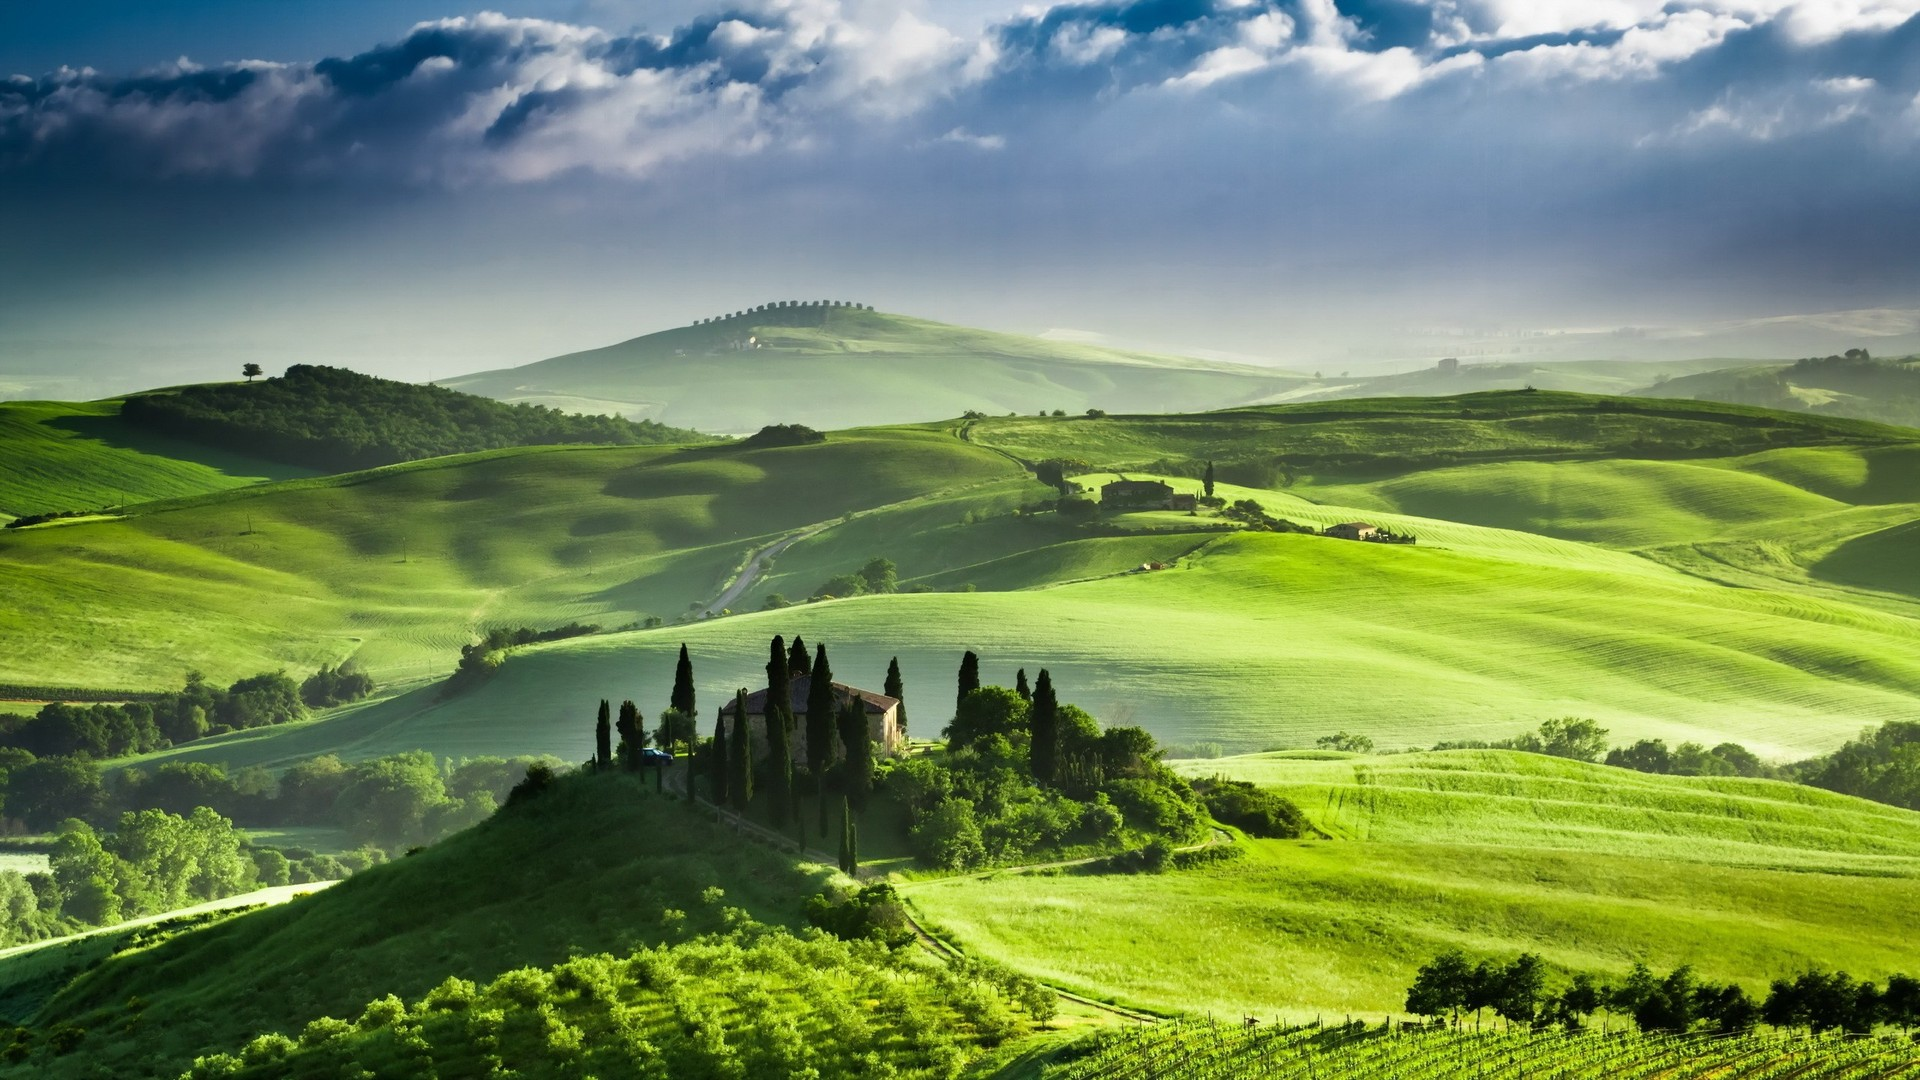 Bilder Landschaft Tuscany, Italy. | Parents Alliance Of Prince George's